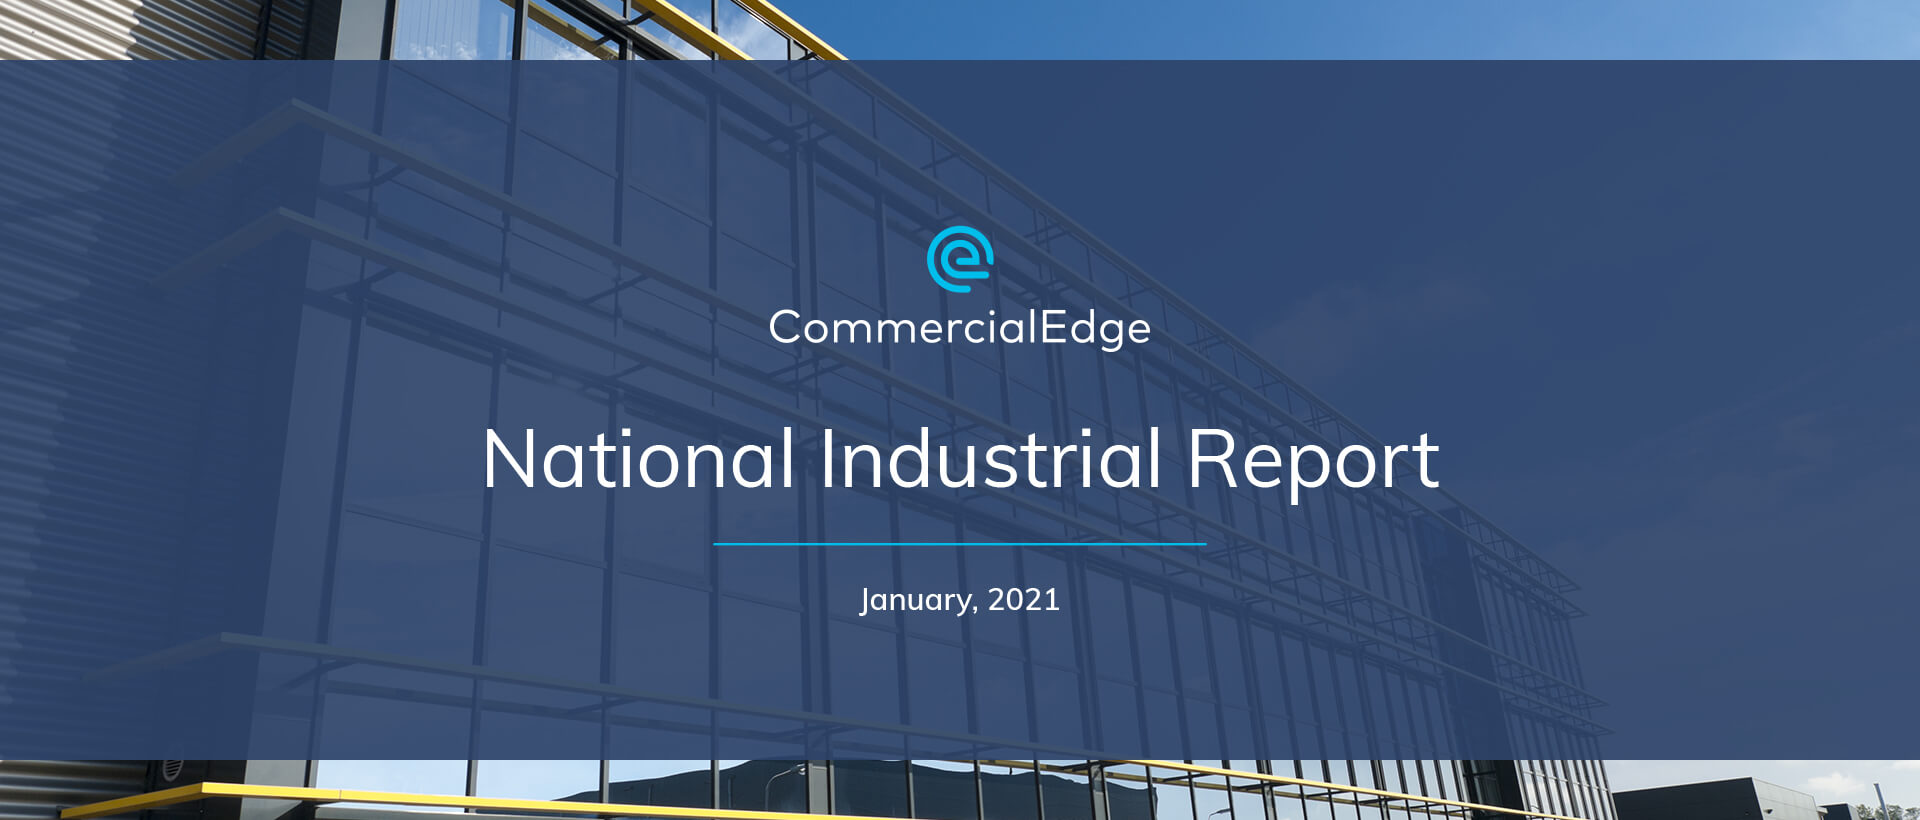 CommercialEdge National Industrial Report January 2021